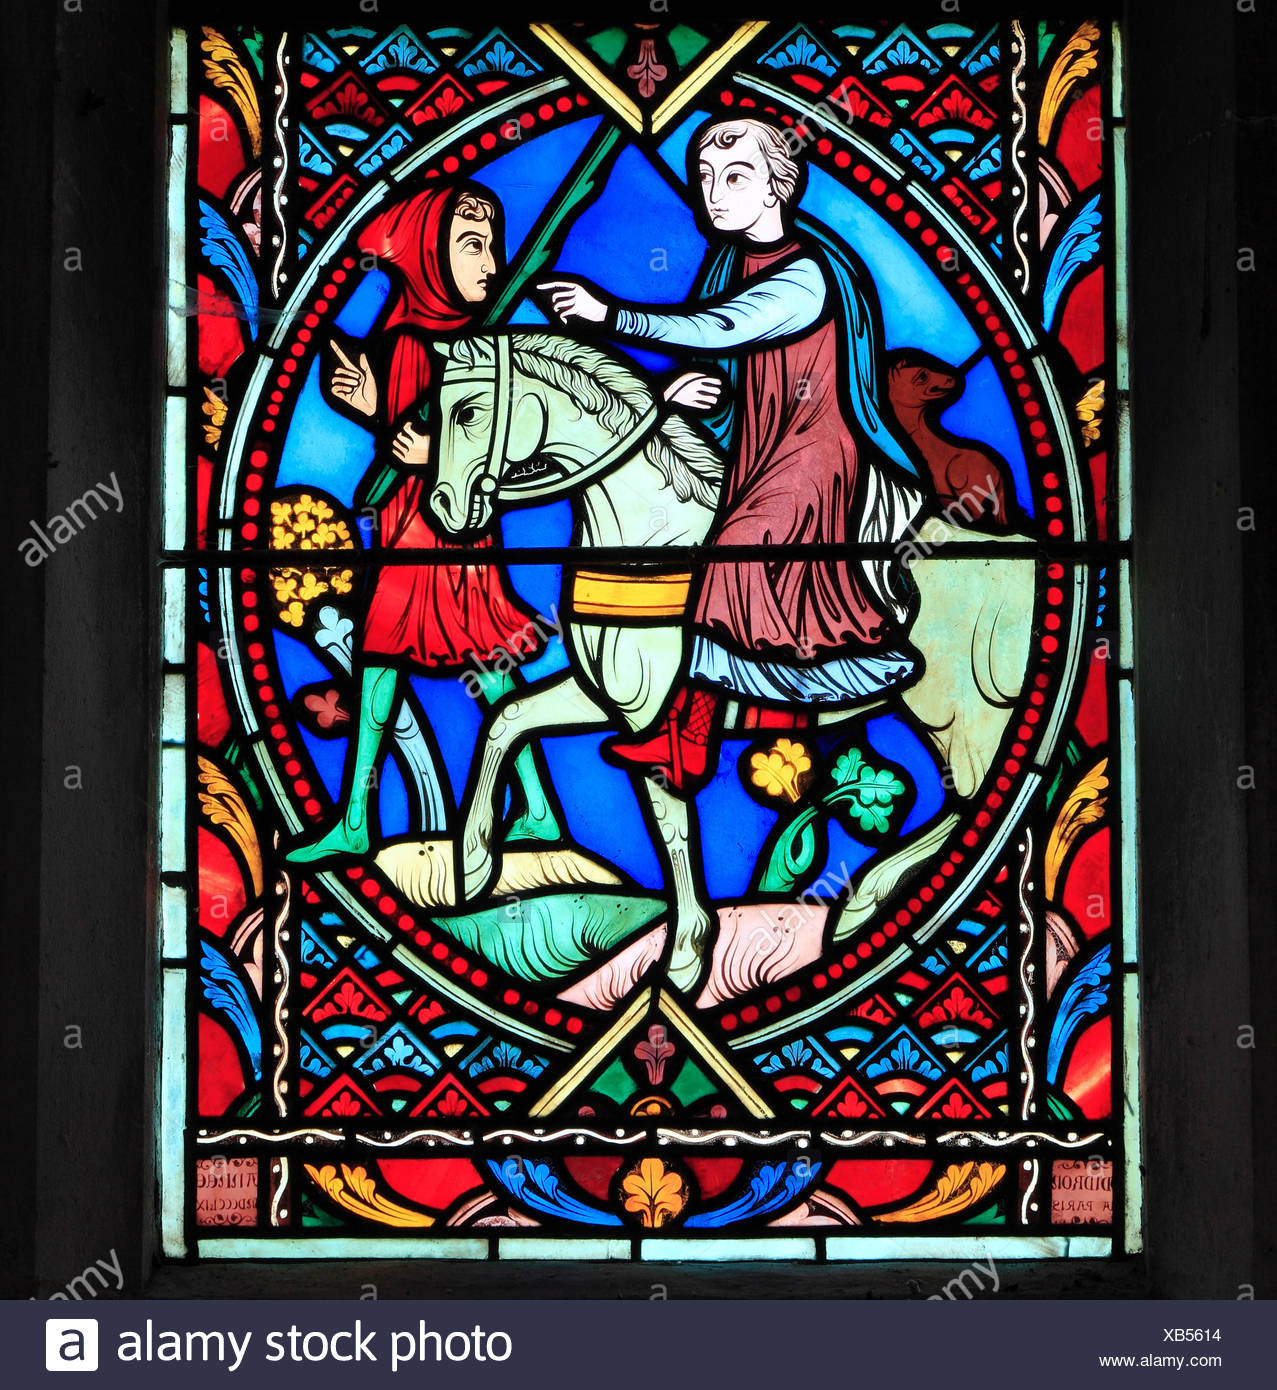 Parable of The Prodigal Son, by Didron of Paris, 1859.  Stained glass window, Feltwell Church, Norfolk, England, Prodigal Son rides to distant land - Stock Image